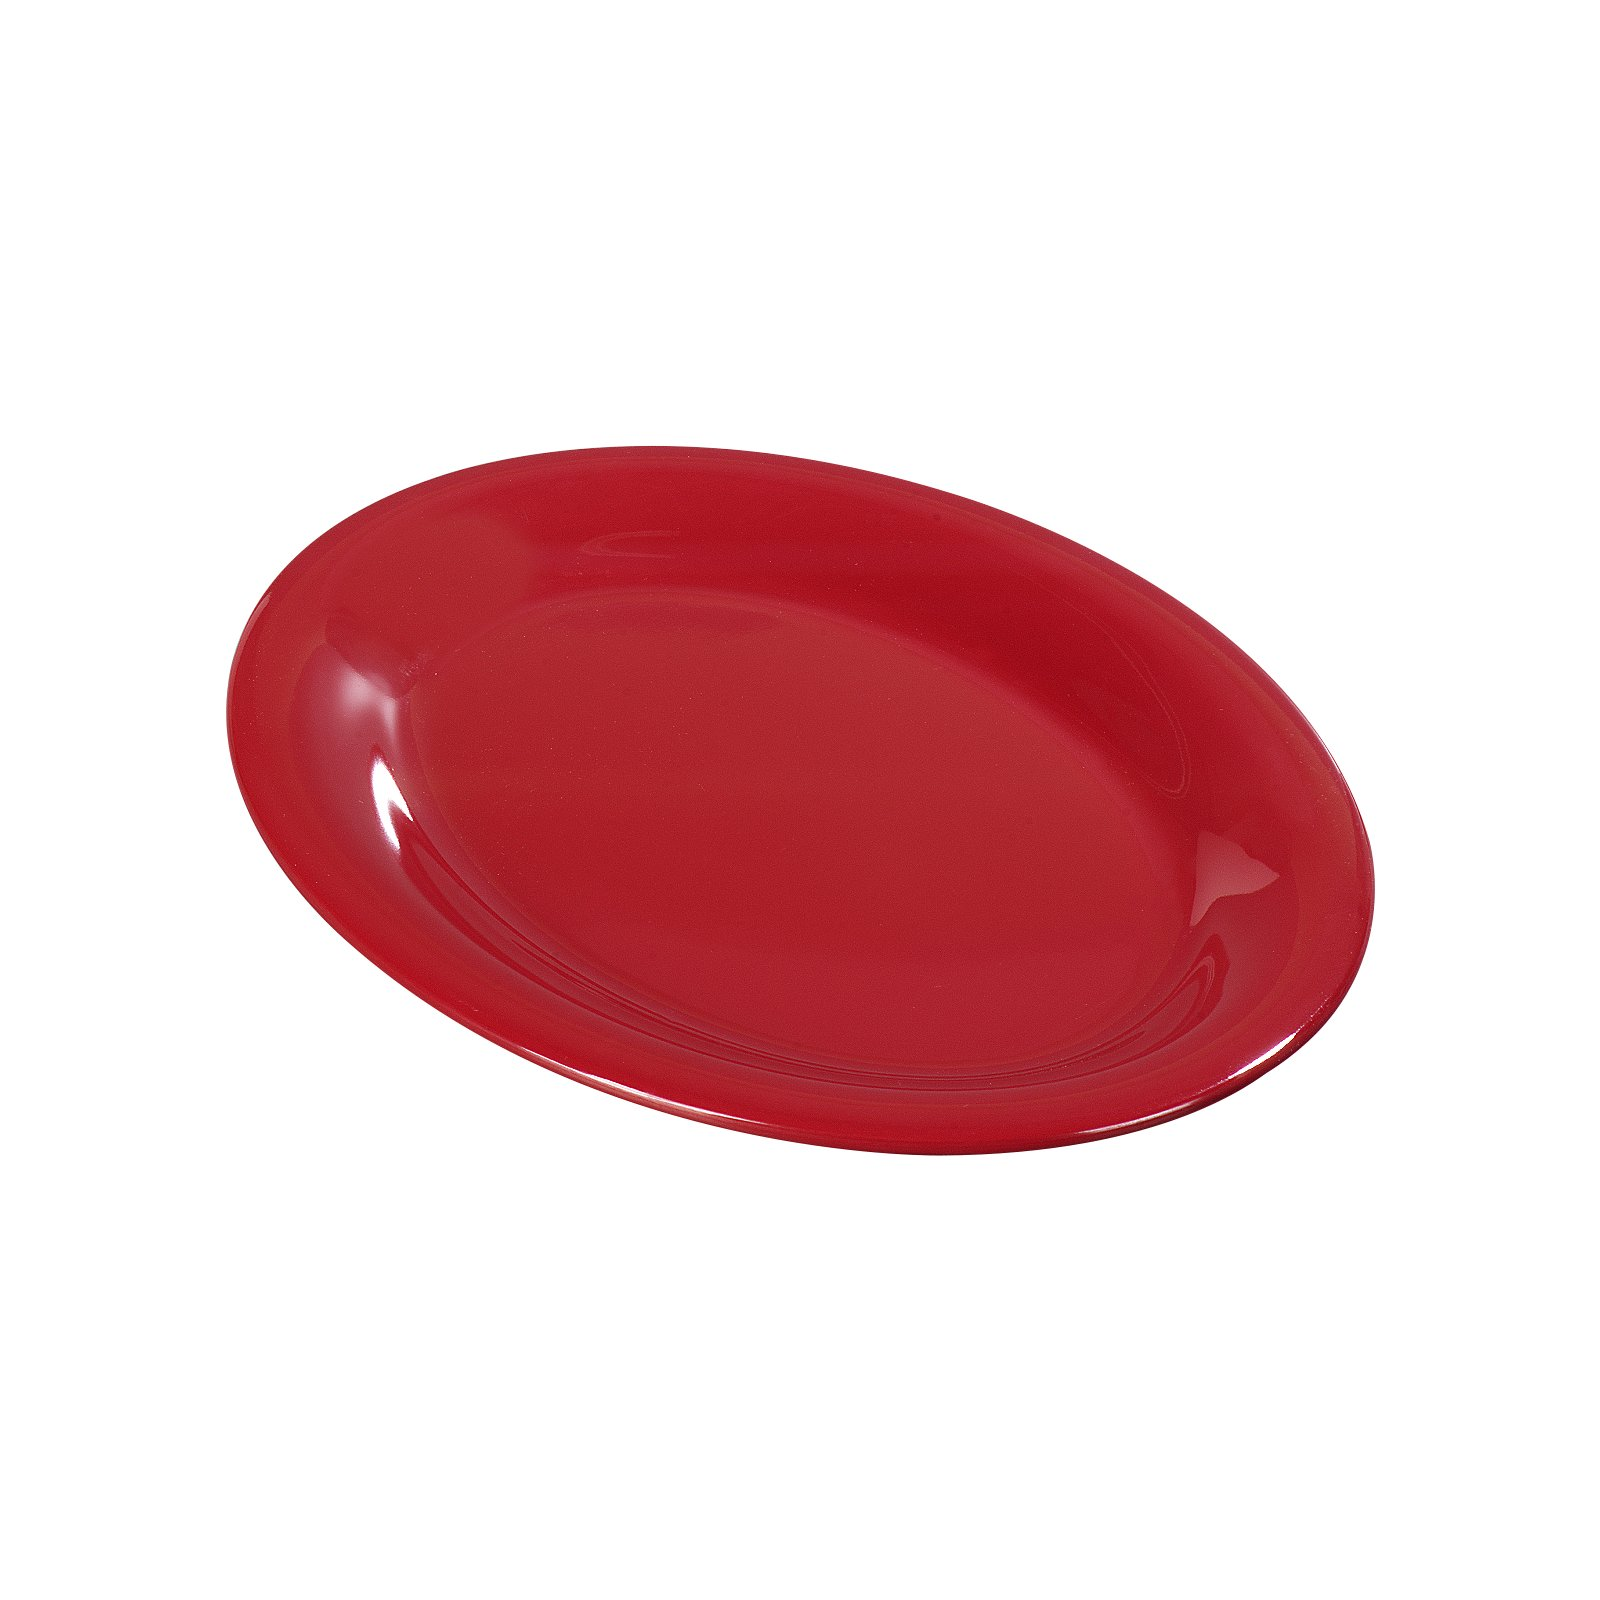 3308605 - Sierrus™ Melamine Oval Platter Tray 9.5\  x 7.25\  - Red  sc 1 st  Carlisle FoodService Products & 3308605 - Sierrus™ Melamine Oval Platter Tray 9.5\